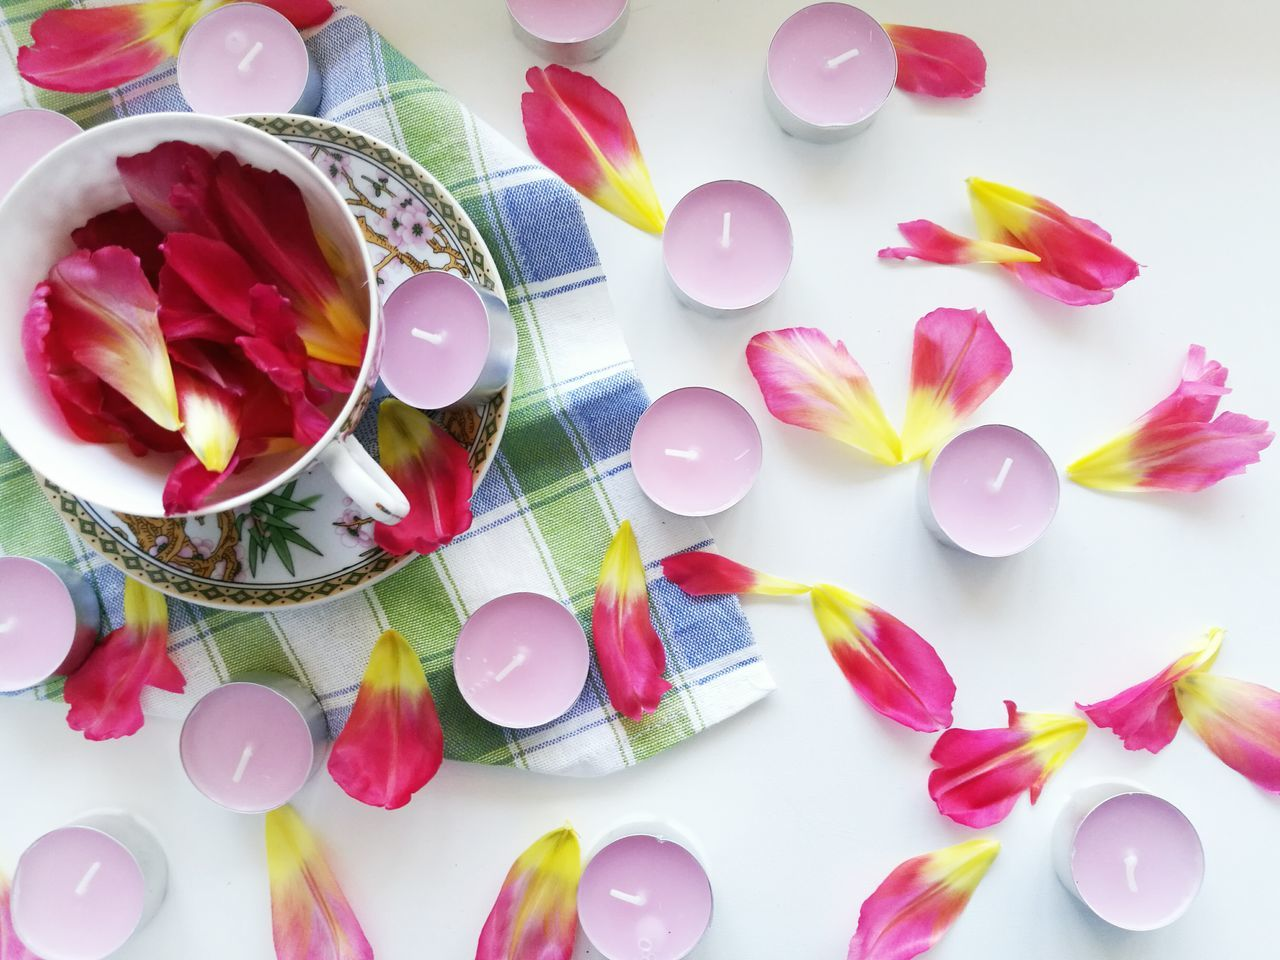 Celebration Variation Indoors  Flower Petals🌸 Tea Time Crocery Composition Pink Color Homeless Large Group Of Objects Abundance Multi Colored Party - Social Event Confetti Close-up No People White Background Day Millennial Pink